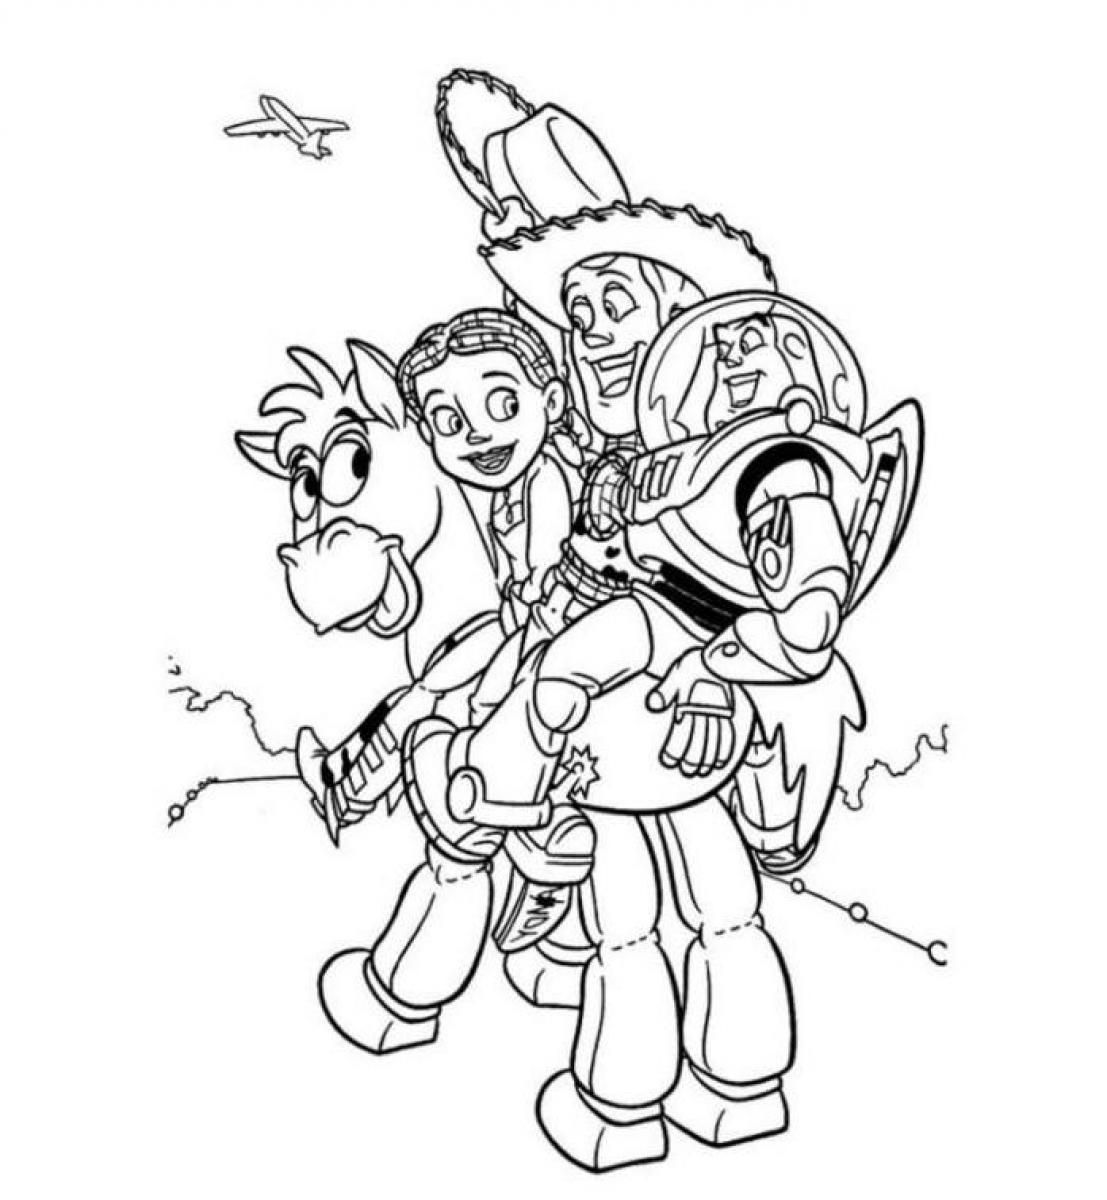 Toy Story 2 Jessie Coloring Pages - Coloring Home